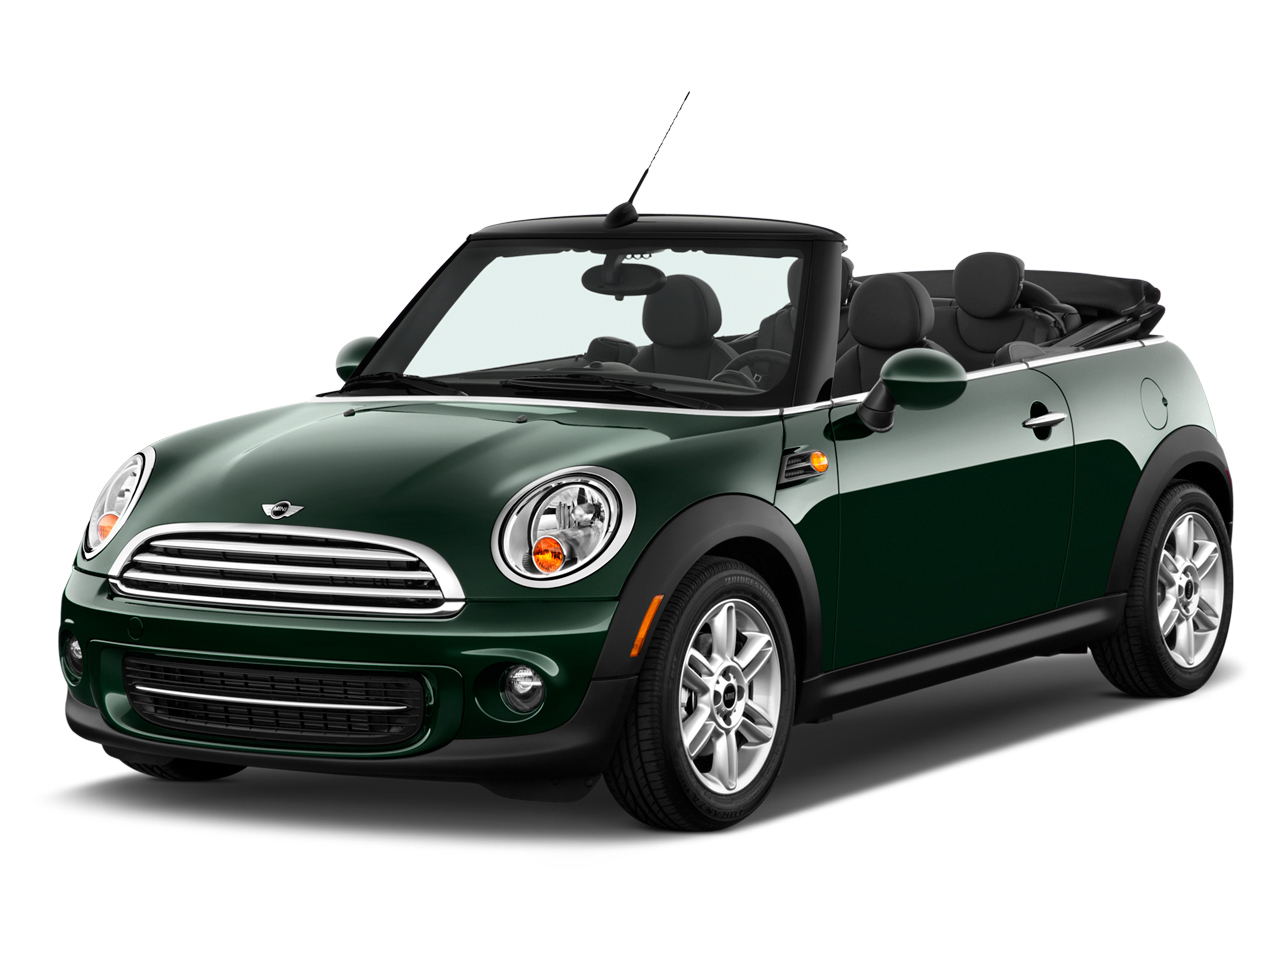 2012 mini cooper convertible review and news motorauthority. Black Bedroom Furniture Sets. Home Design Ideas